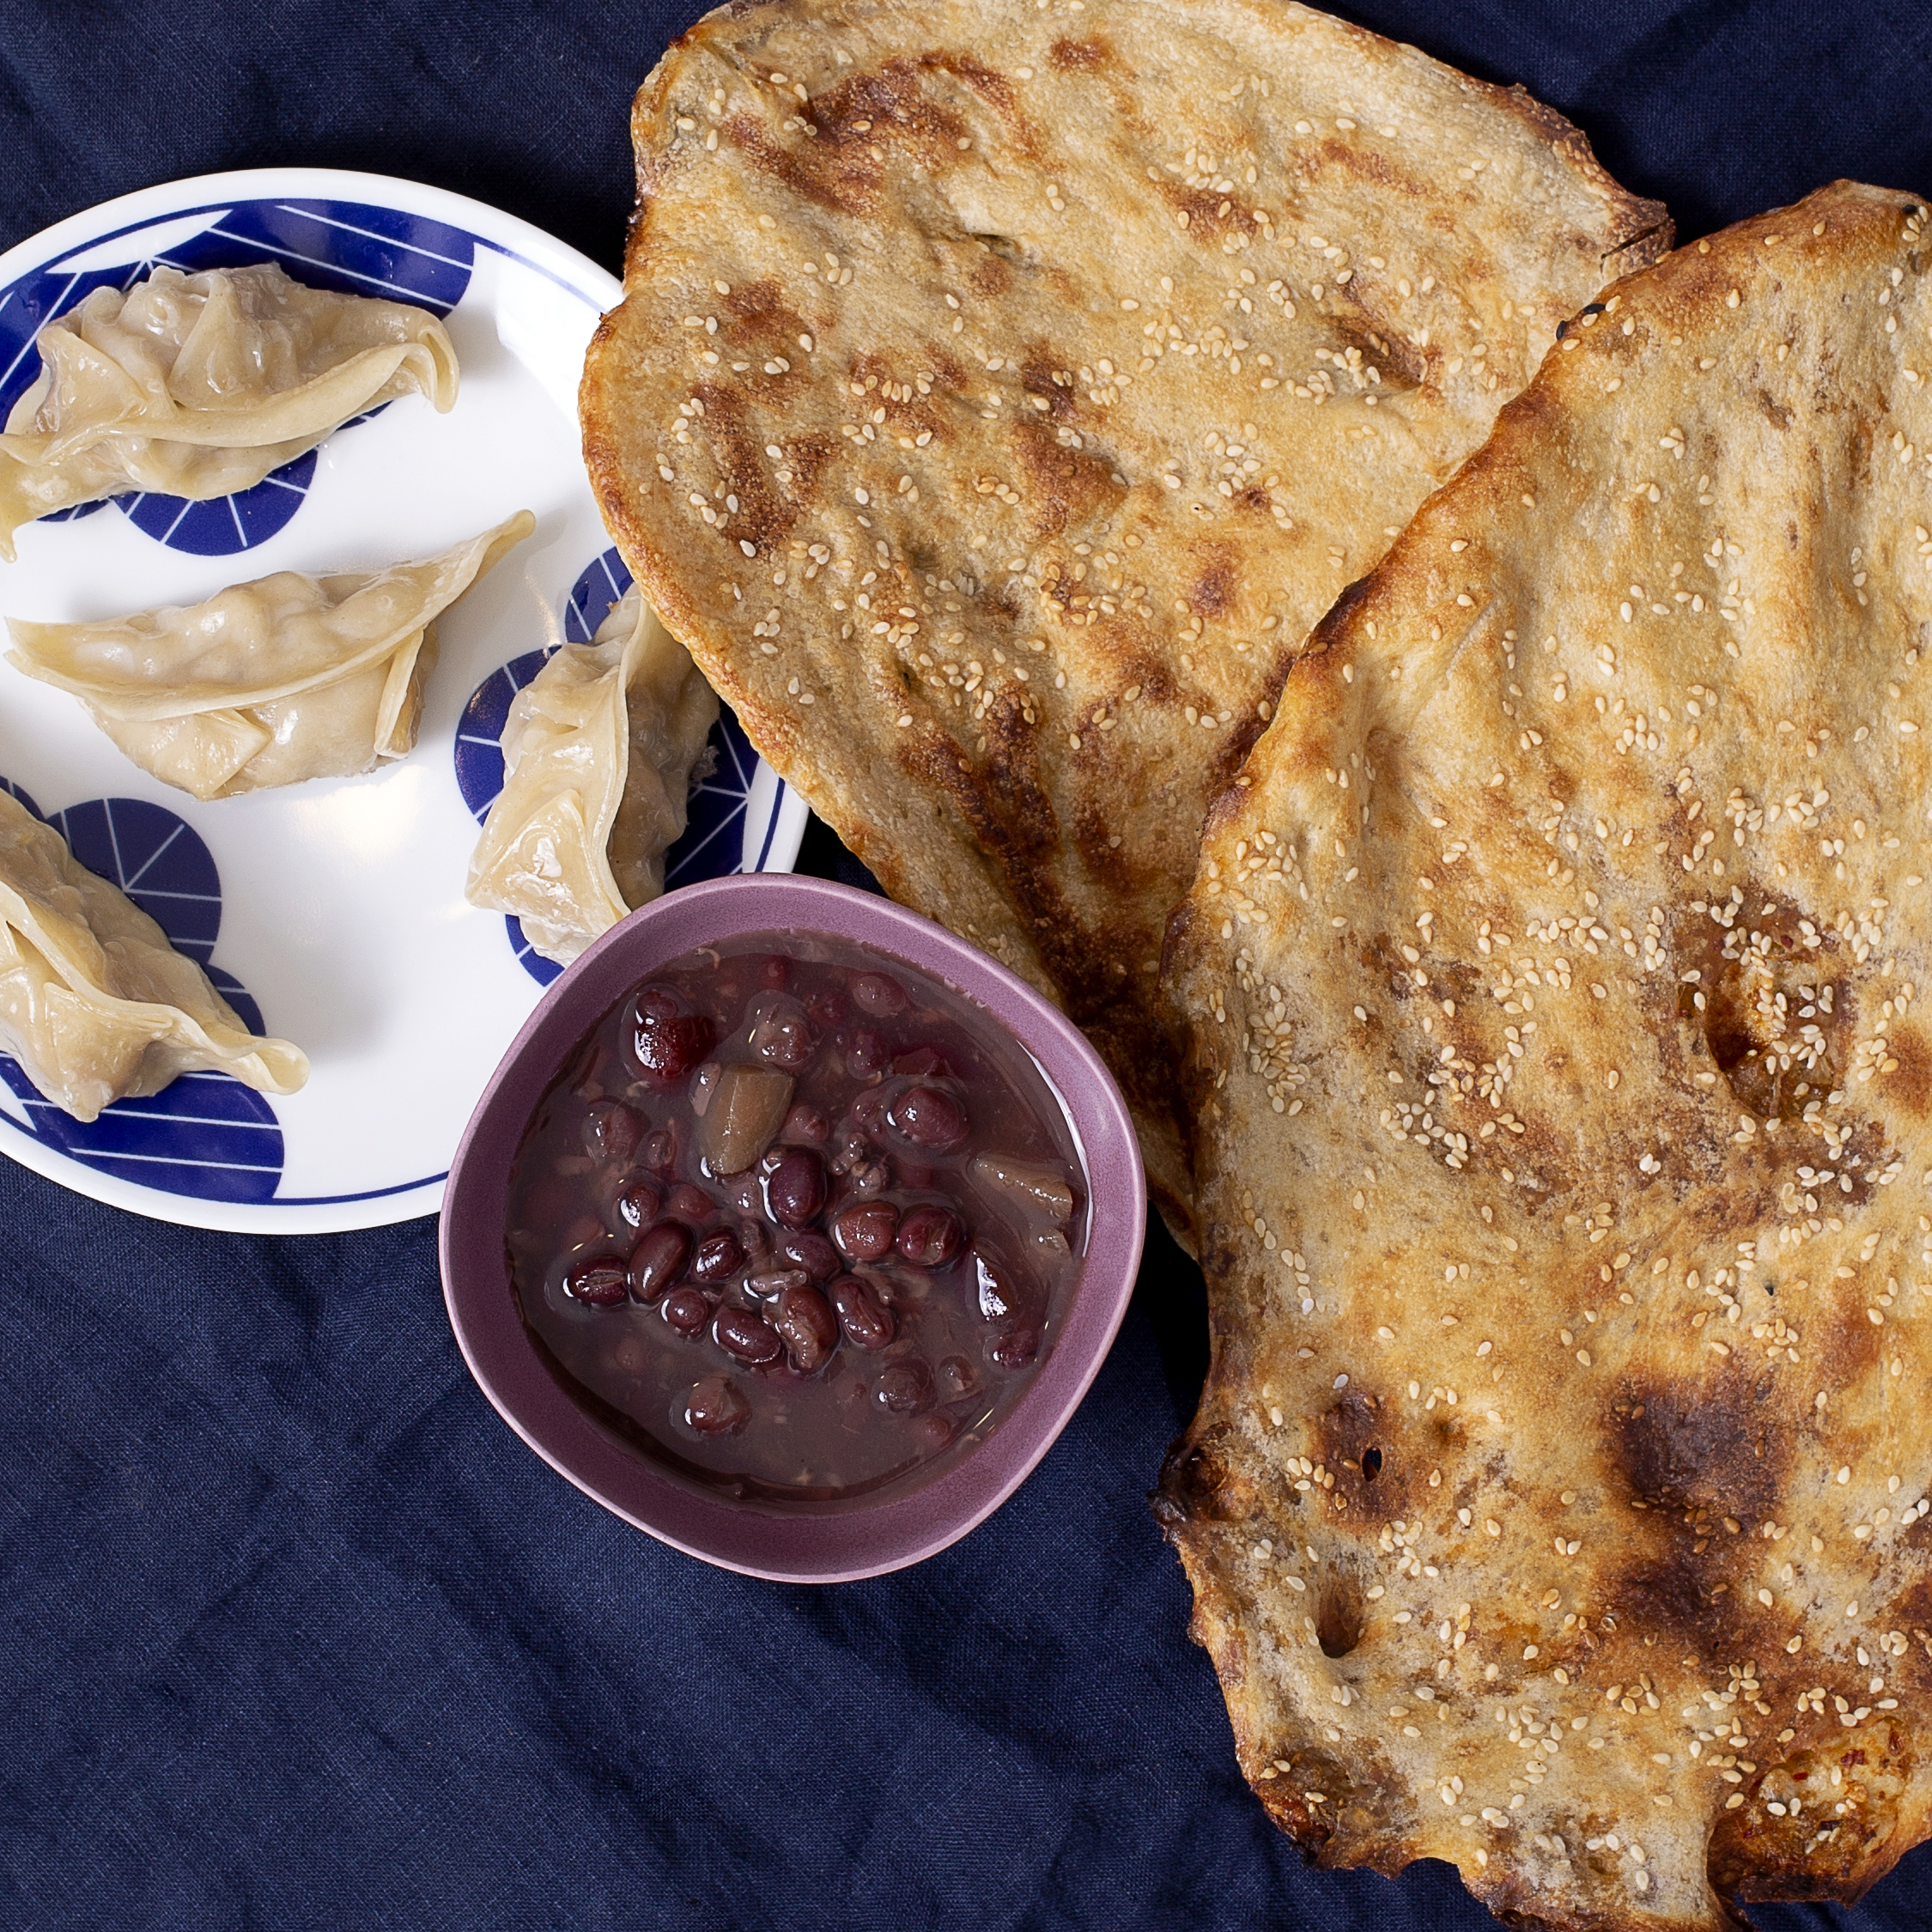 Two toasted flat breads pictured with a cup of soup and four steamed dumplings on a plate